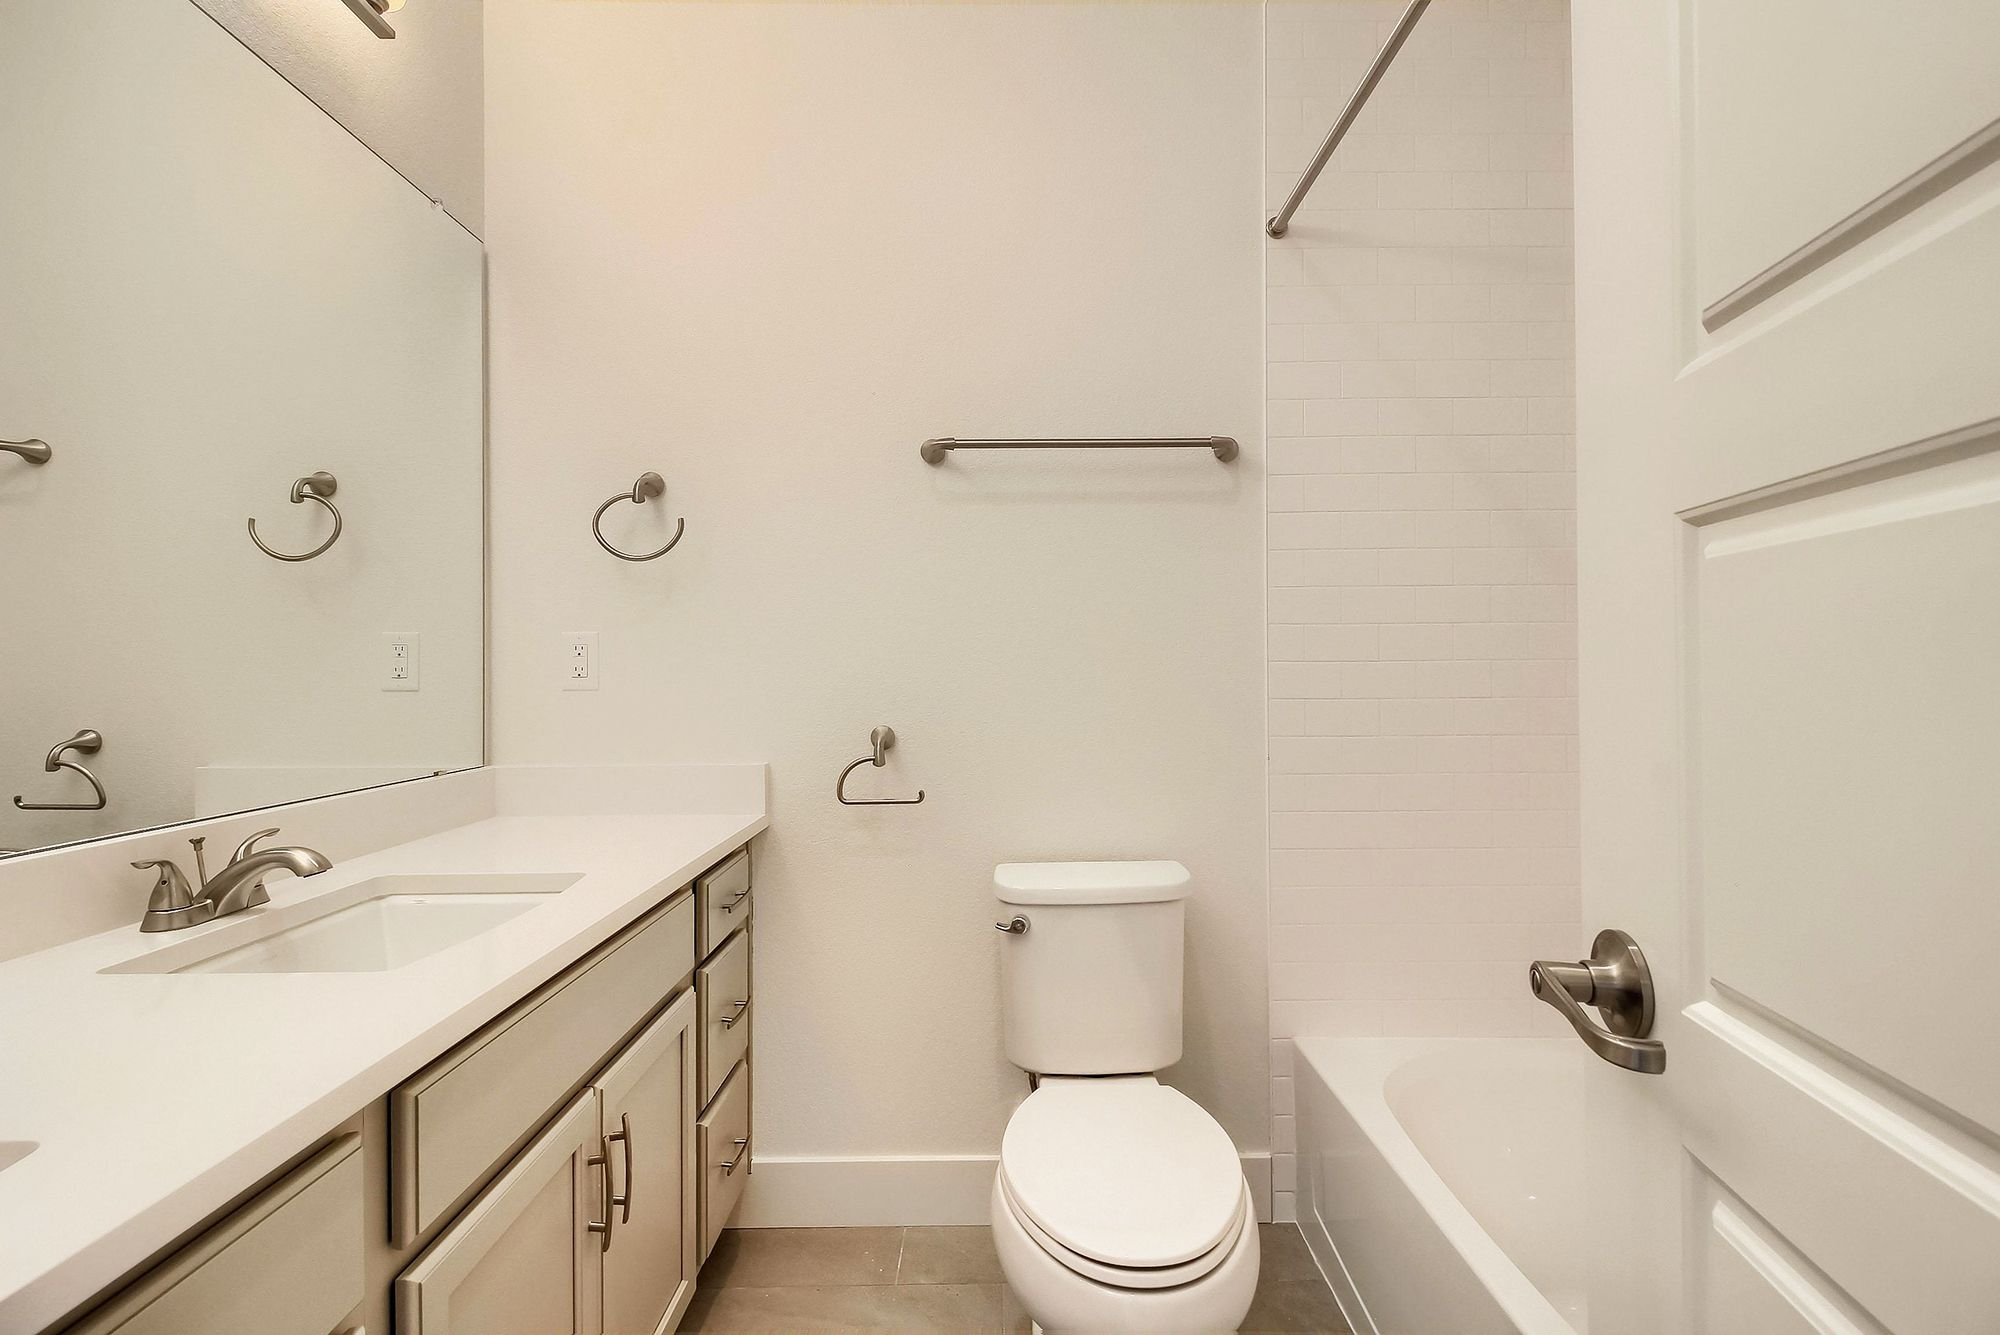 Bathroom featured in the Vitality By Thrive Home Builders in Boulder-Longmont, CO